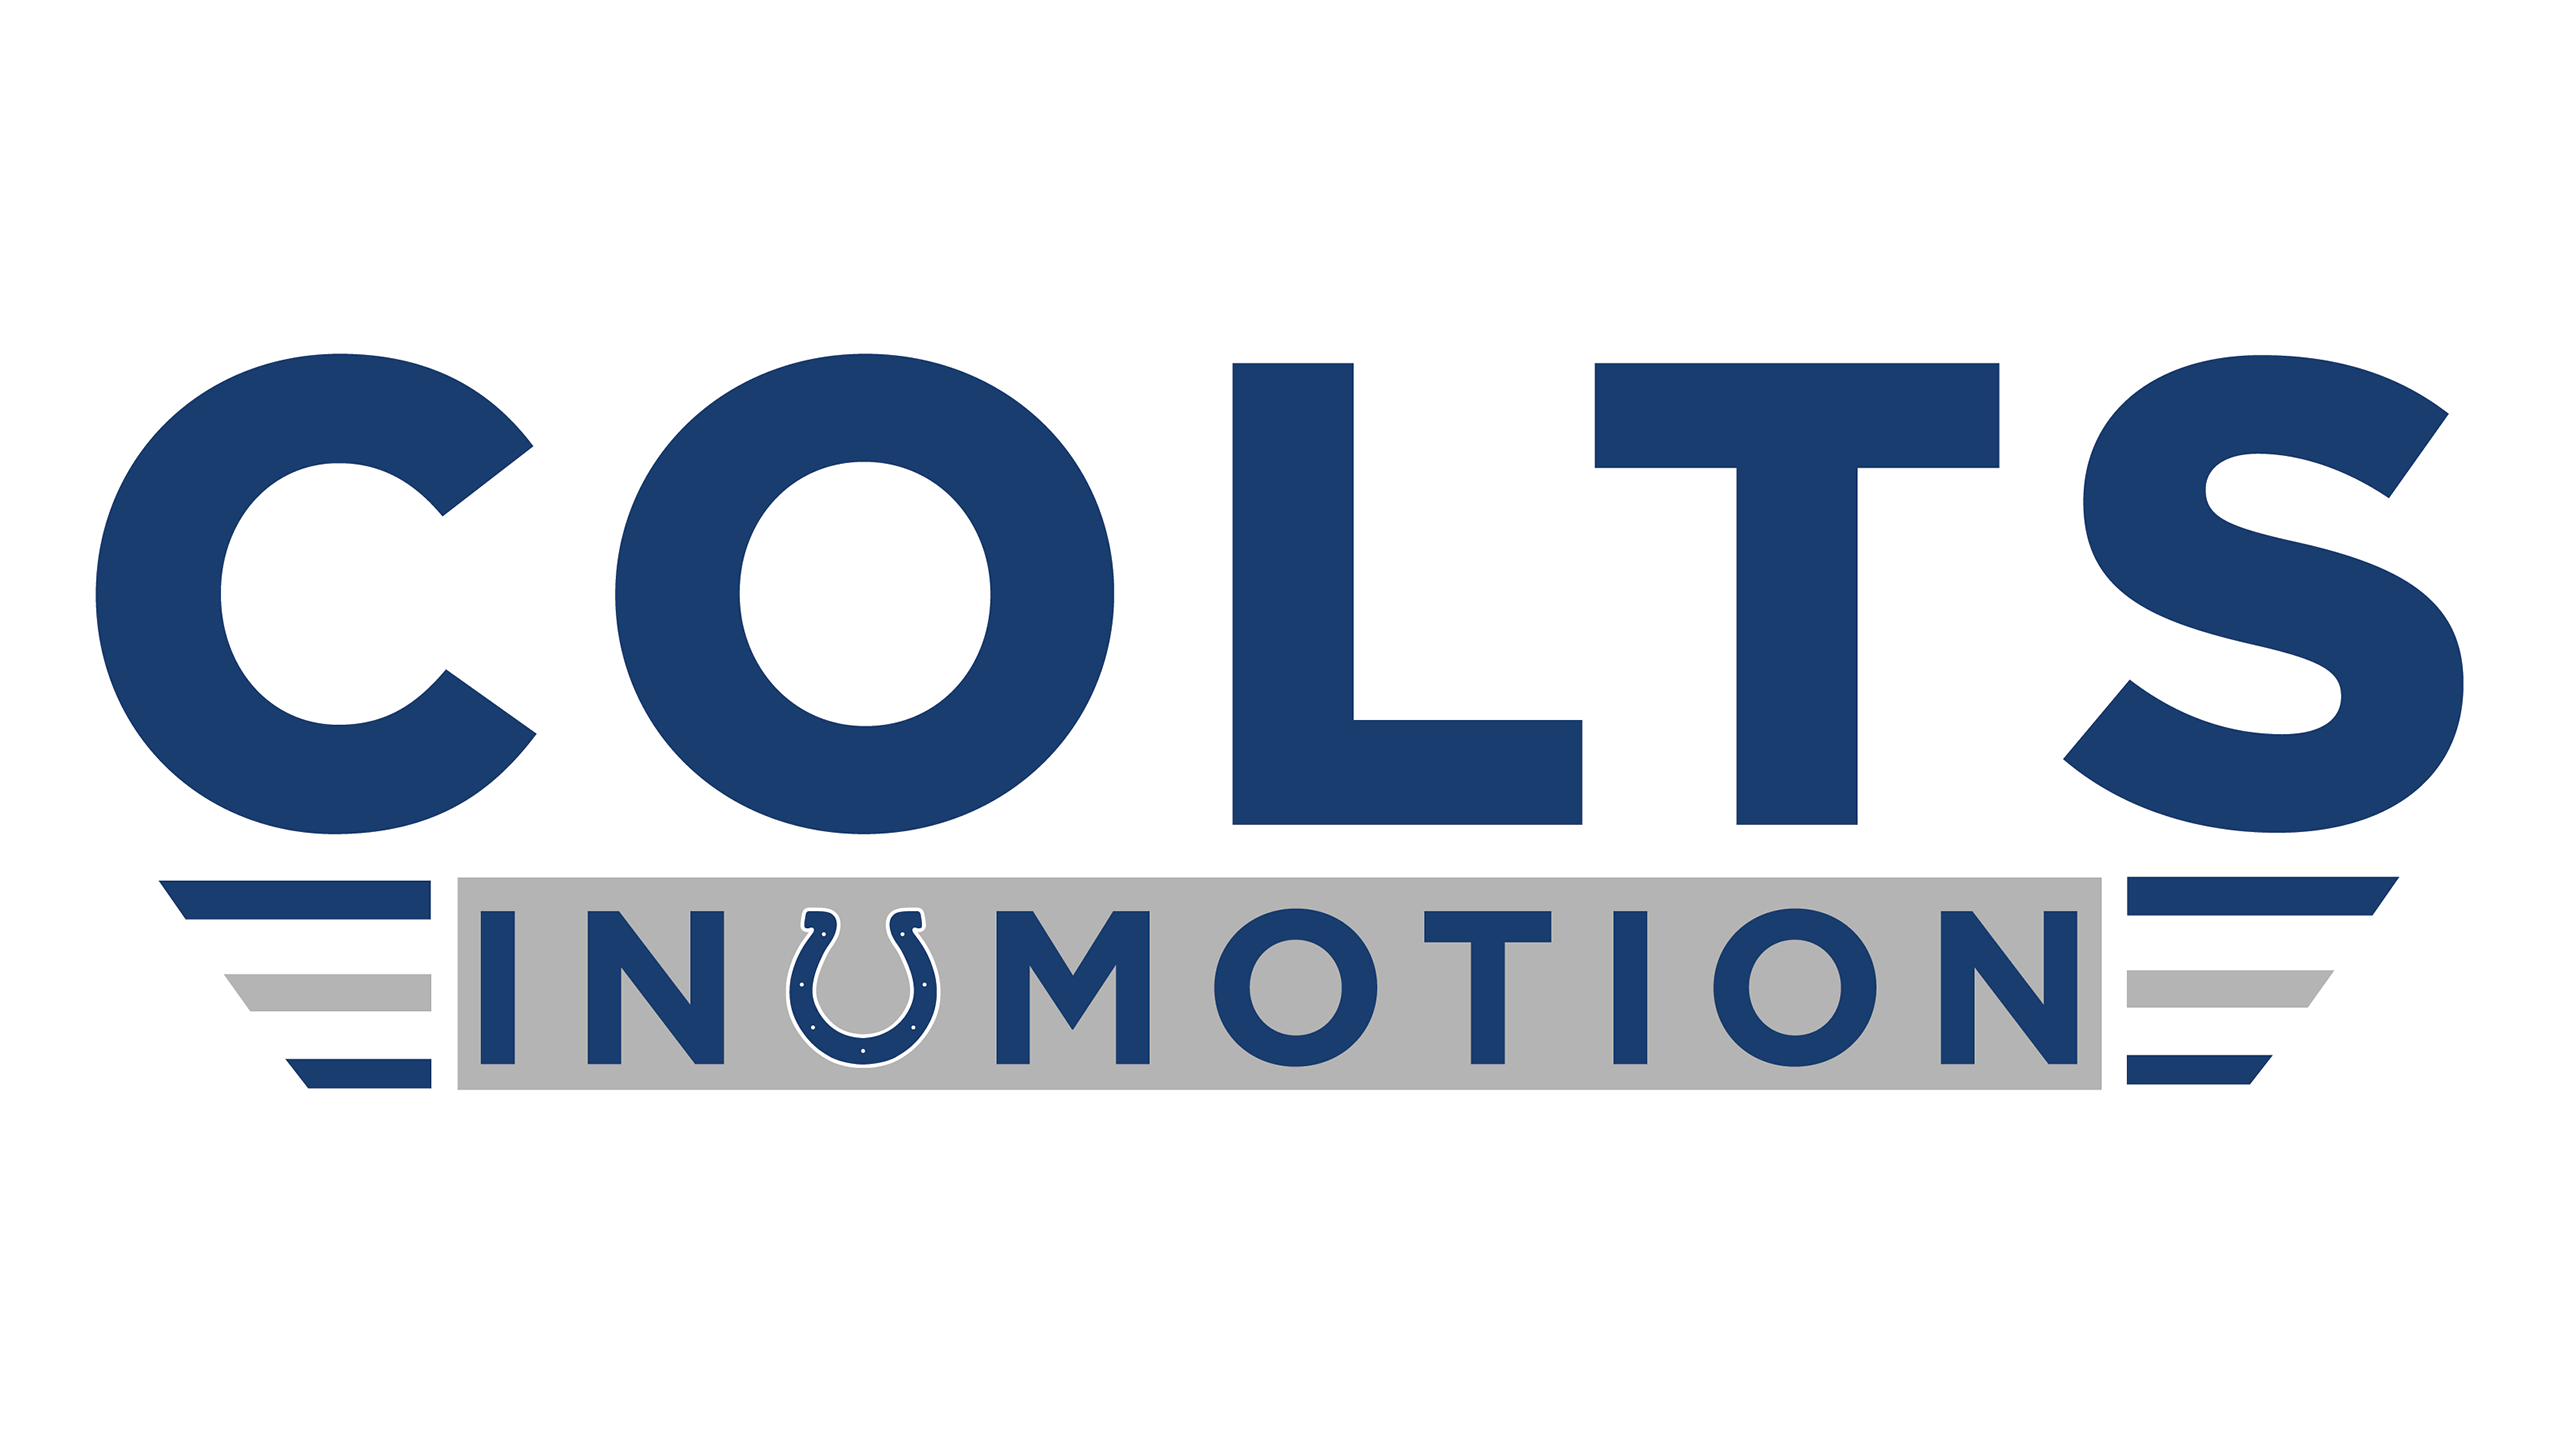 The New Colts In Motion Set to Hit the Road in 2019!